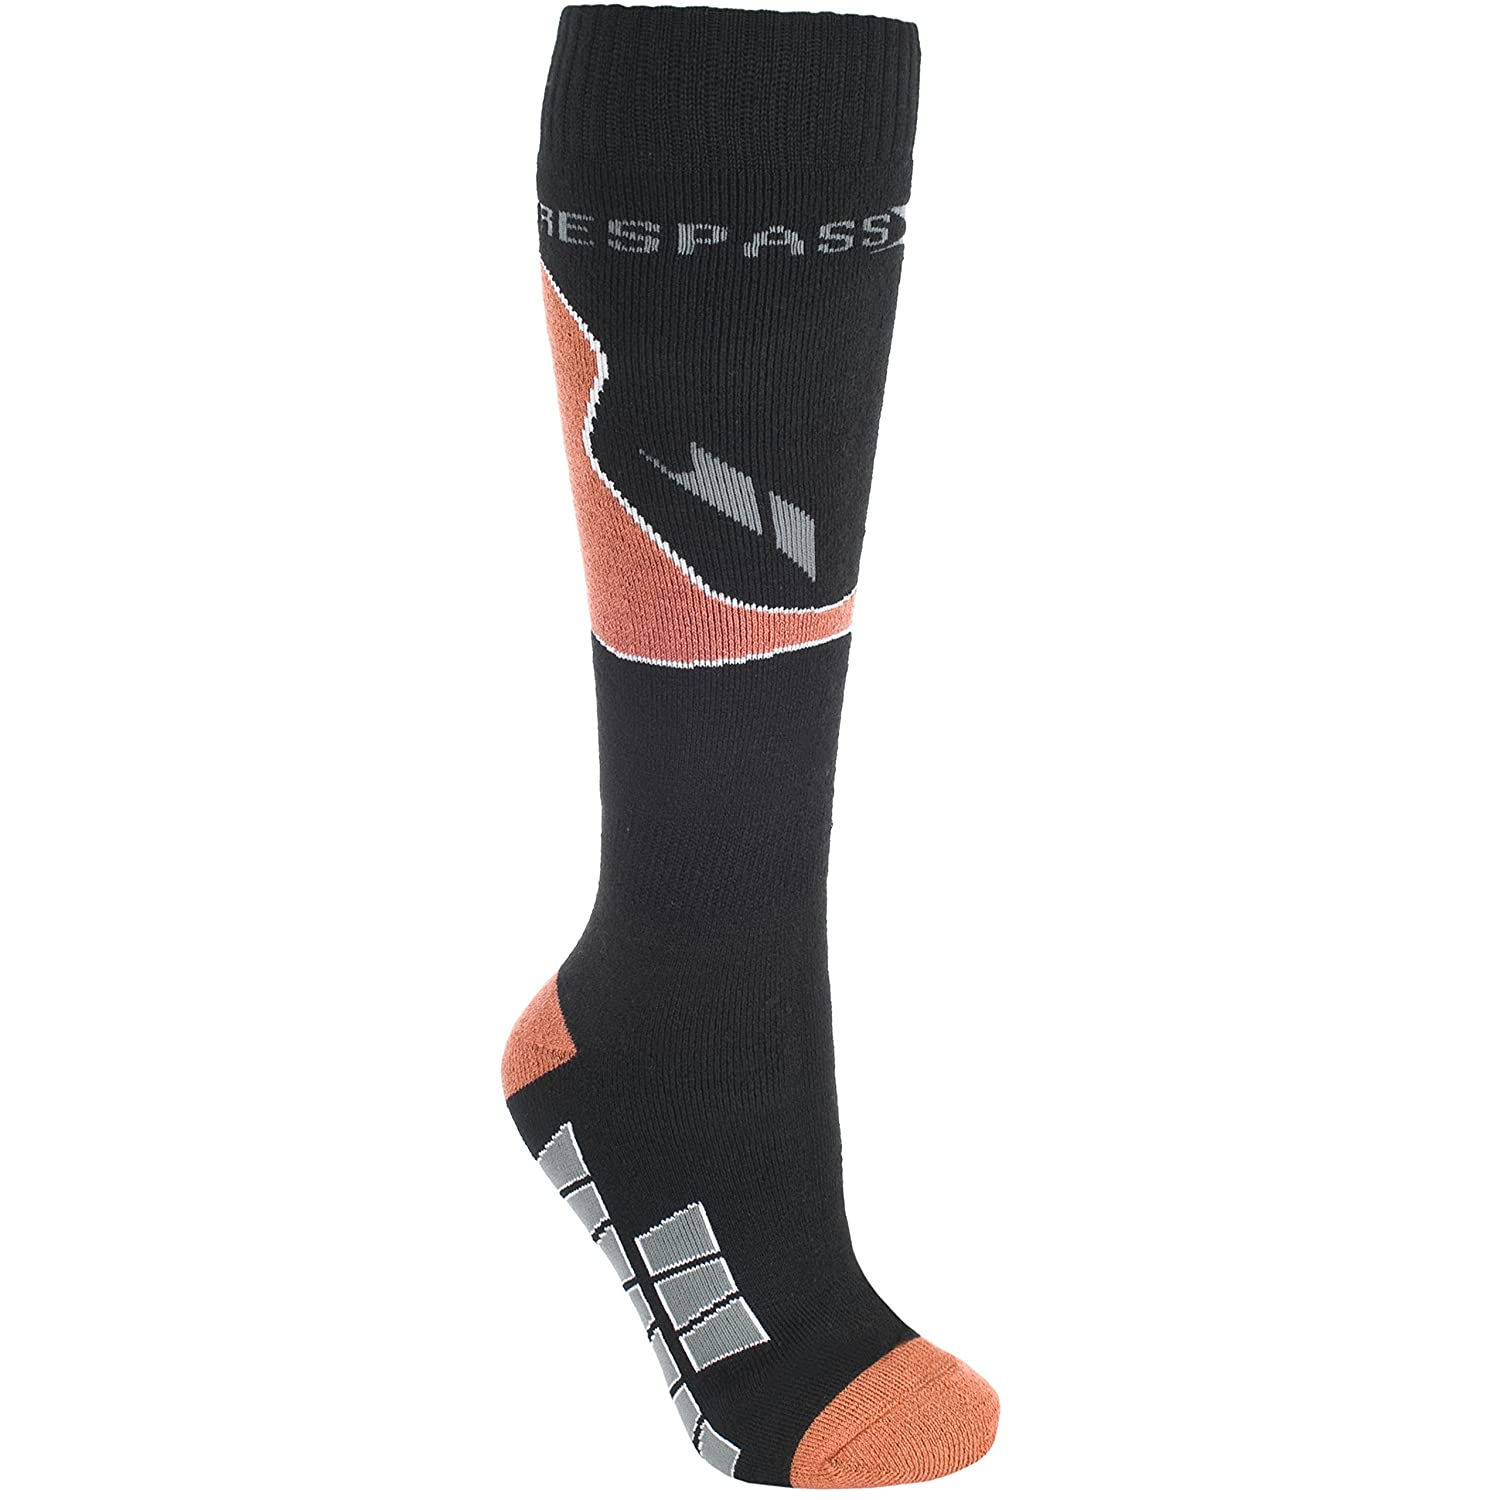 Trespass Mens Drummond Technical Reinforced Ski Socks UTTP2419_1